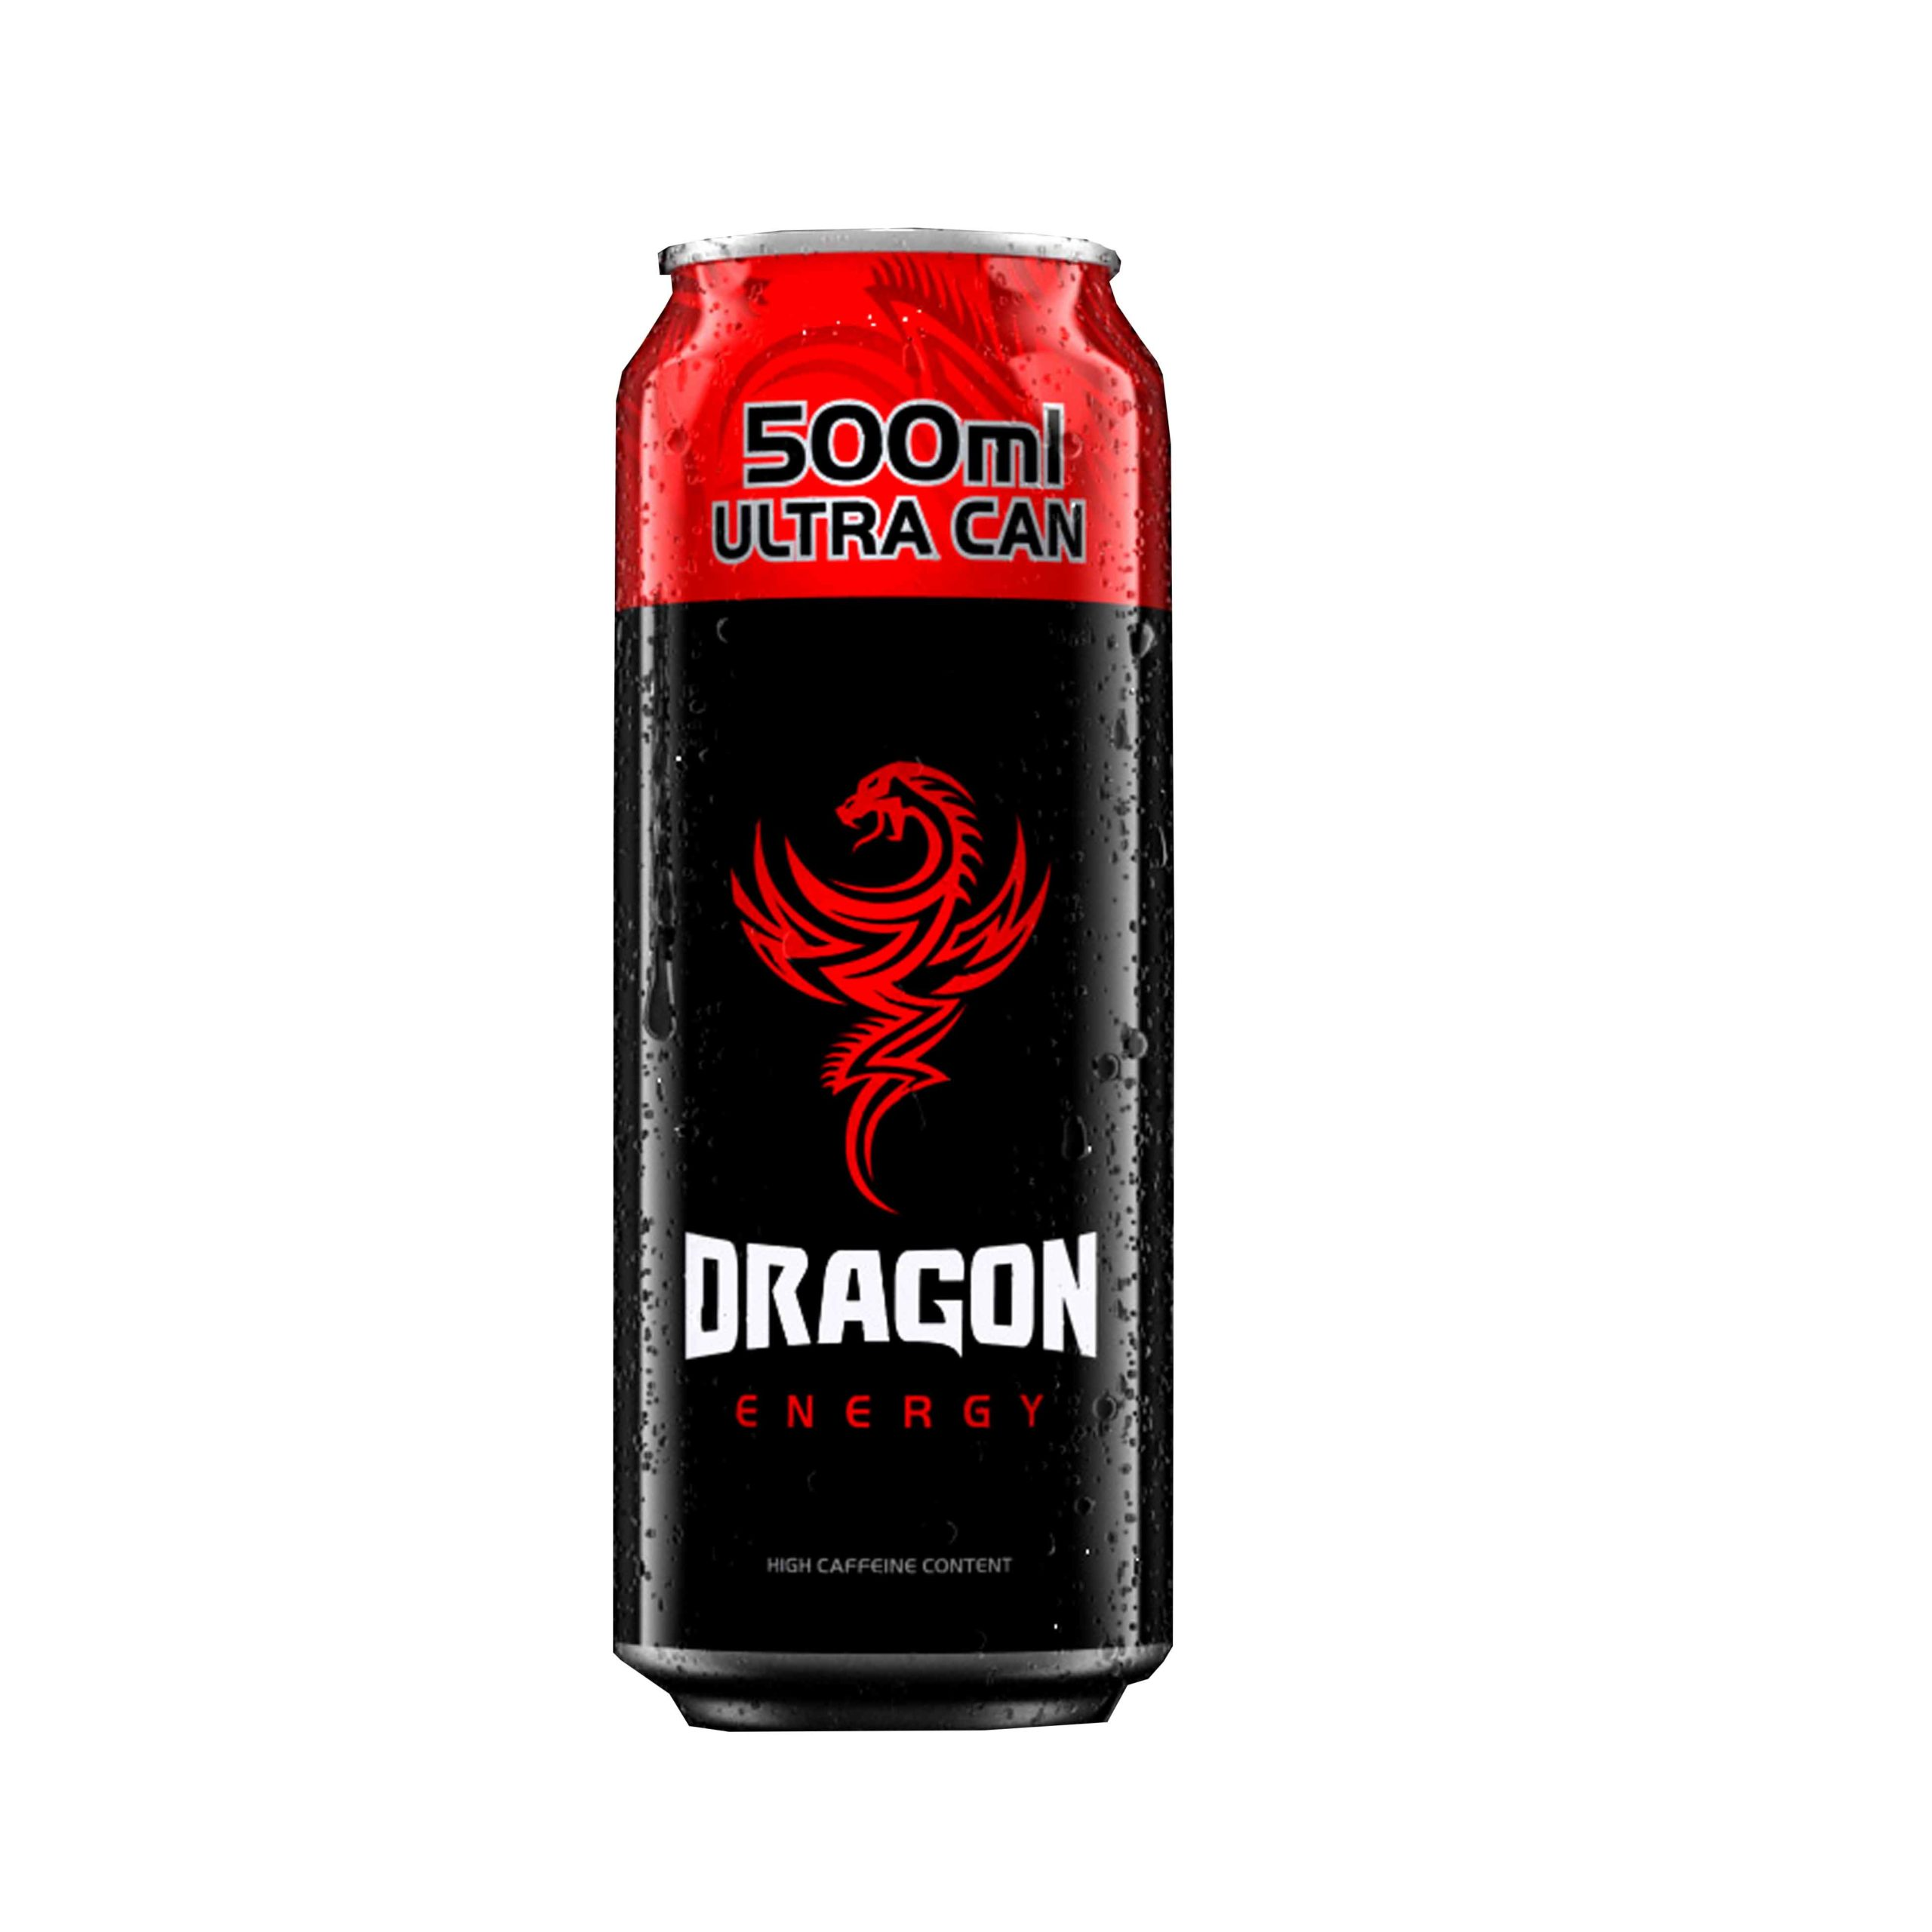 DRAGON ENERGY is now offered Nationwide Through Mr. Checkout's Direct Store Delivery Distributors.